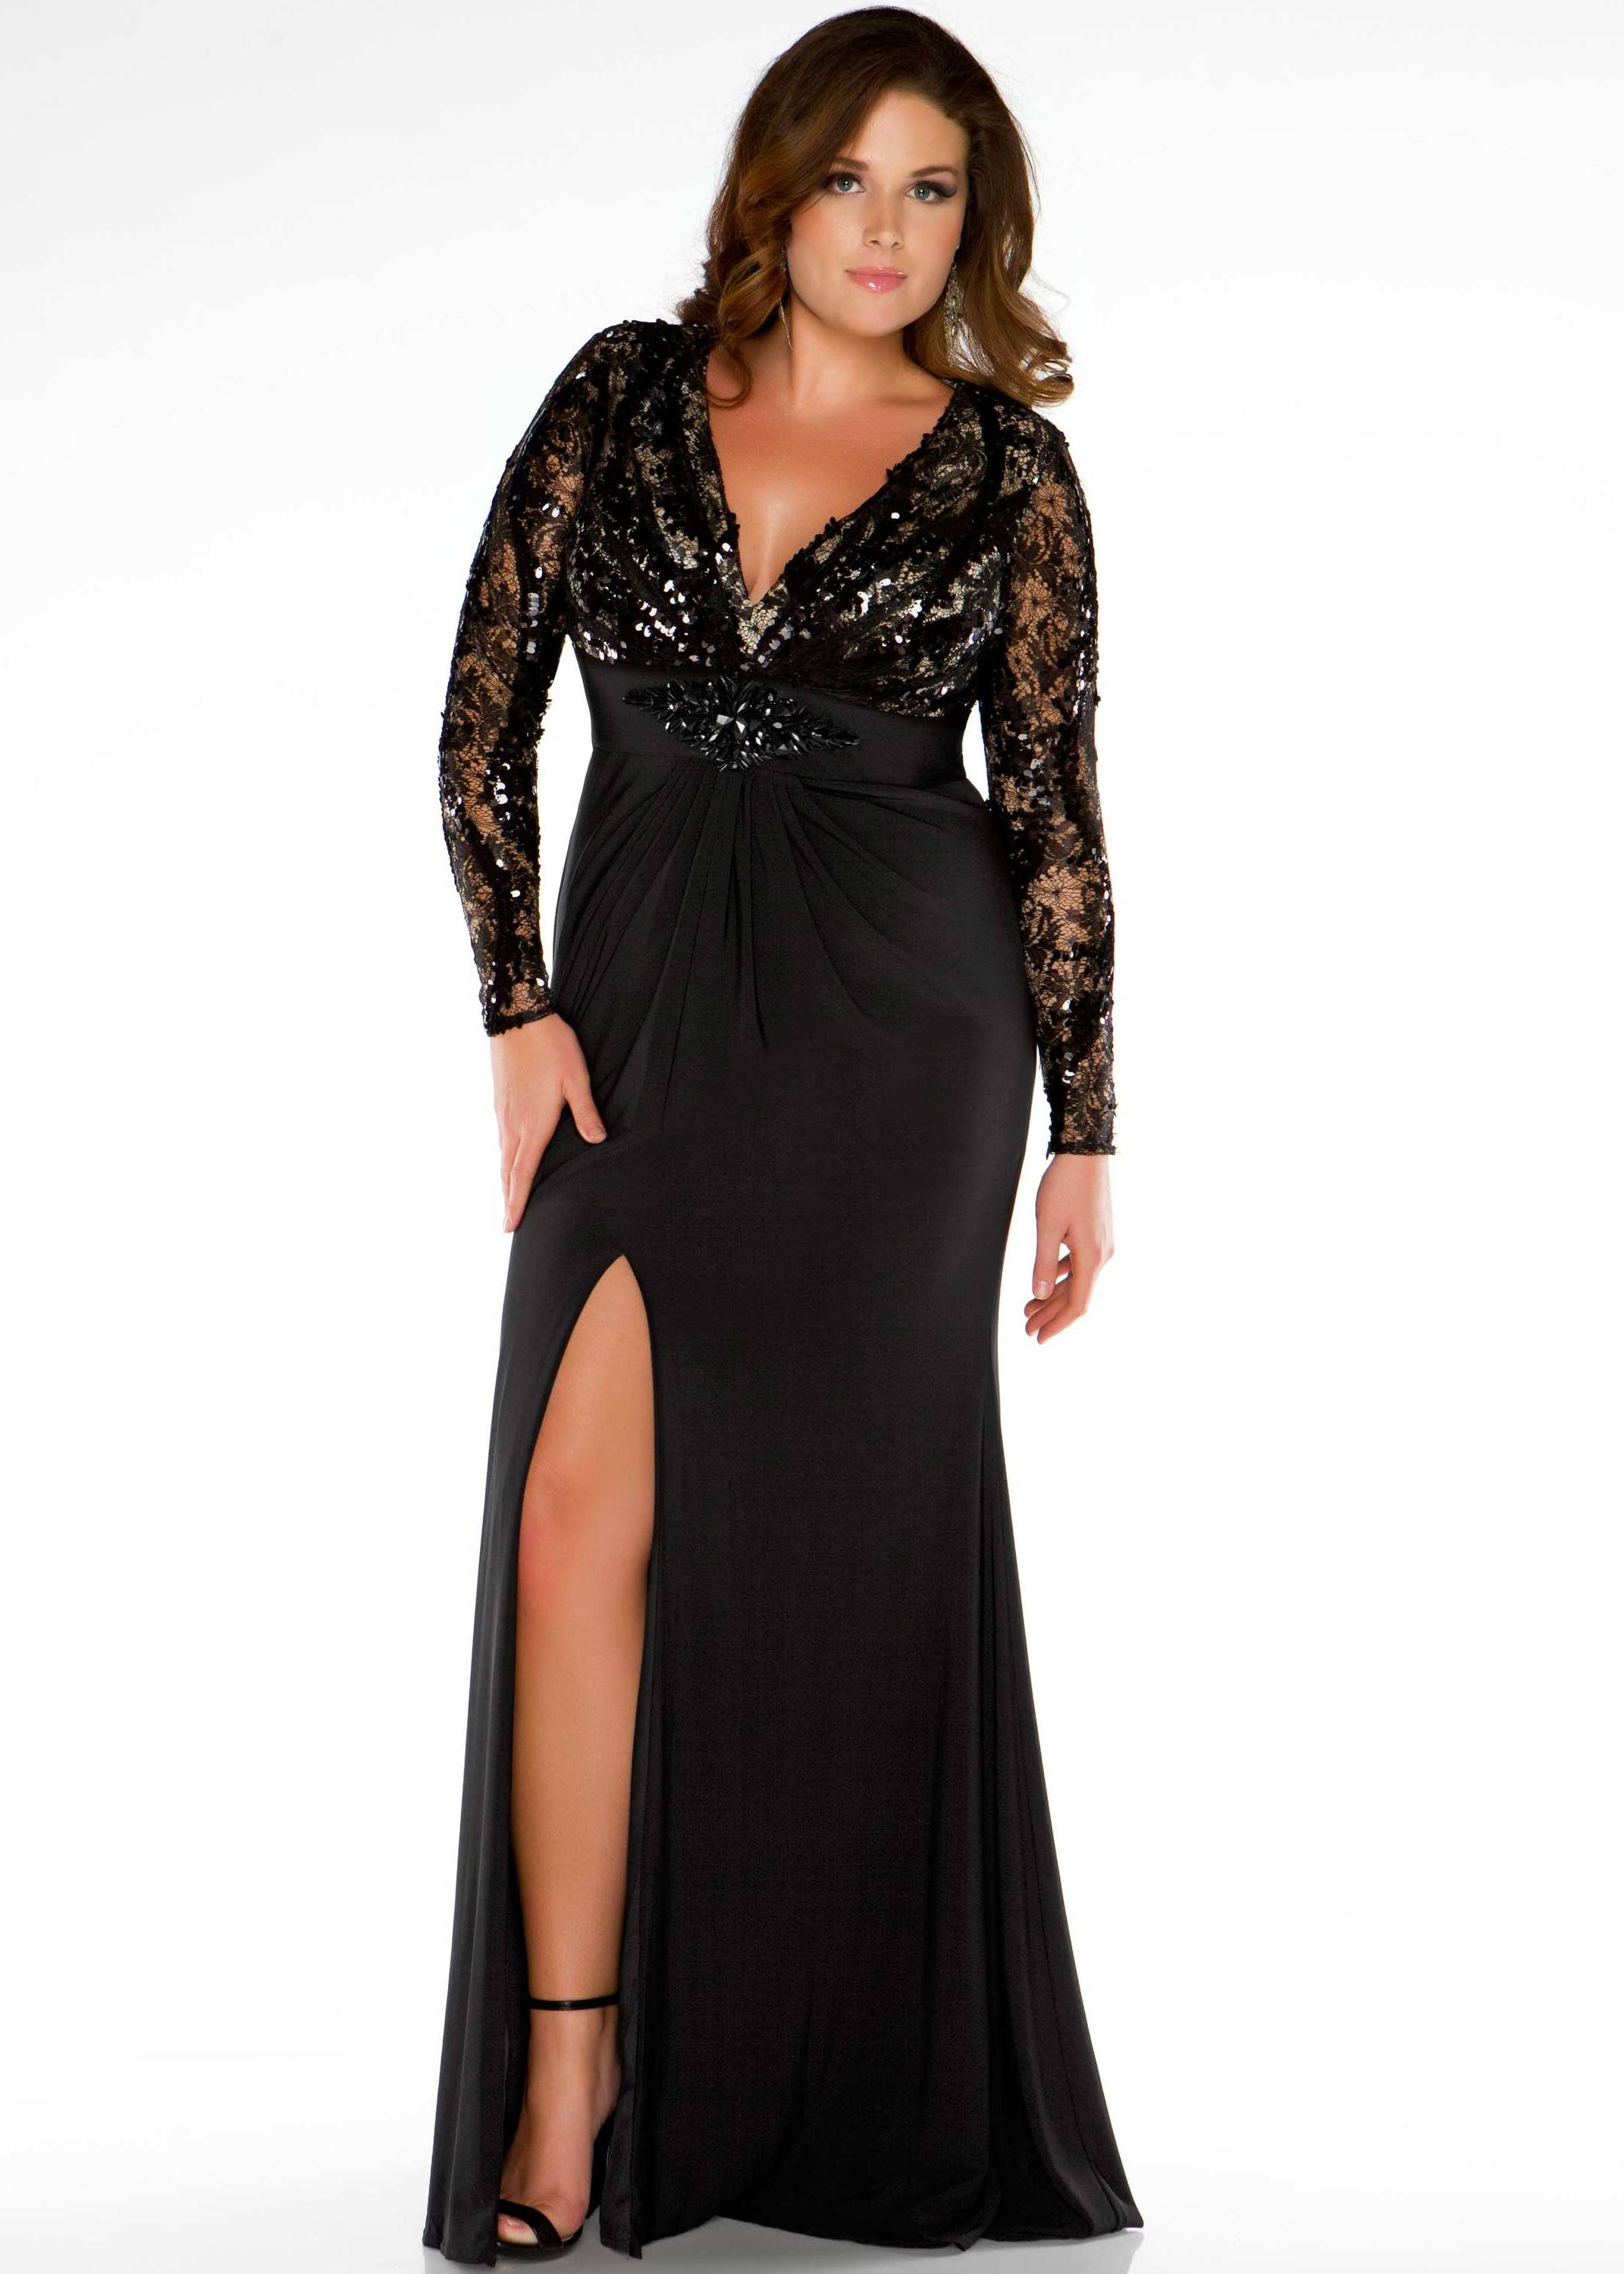 Free shipping on fabulouss by mac duggal f black long sleeve